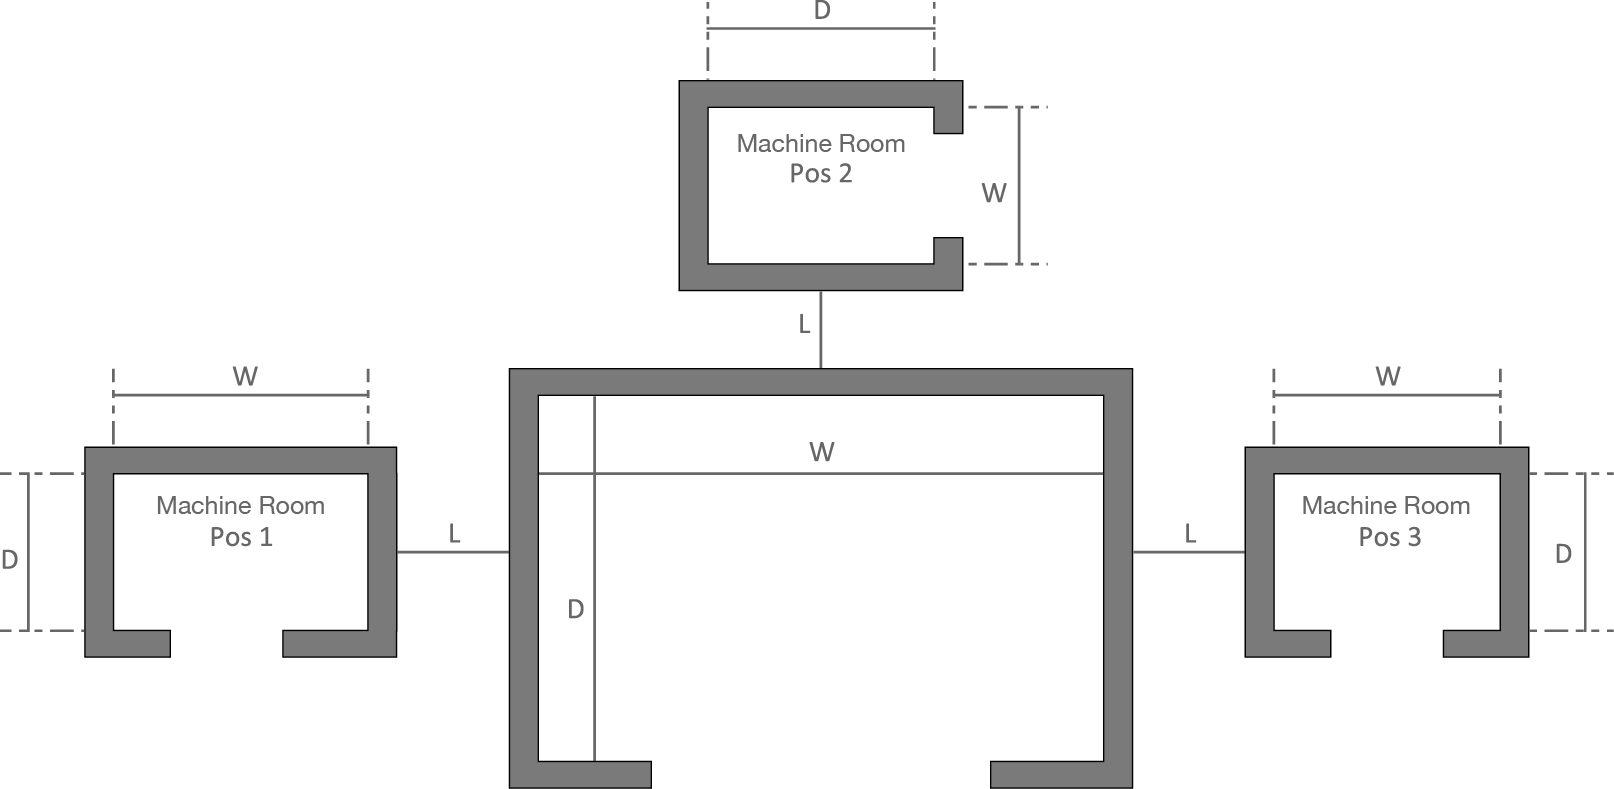 Machine Room Location Graphic